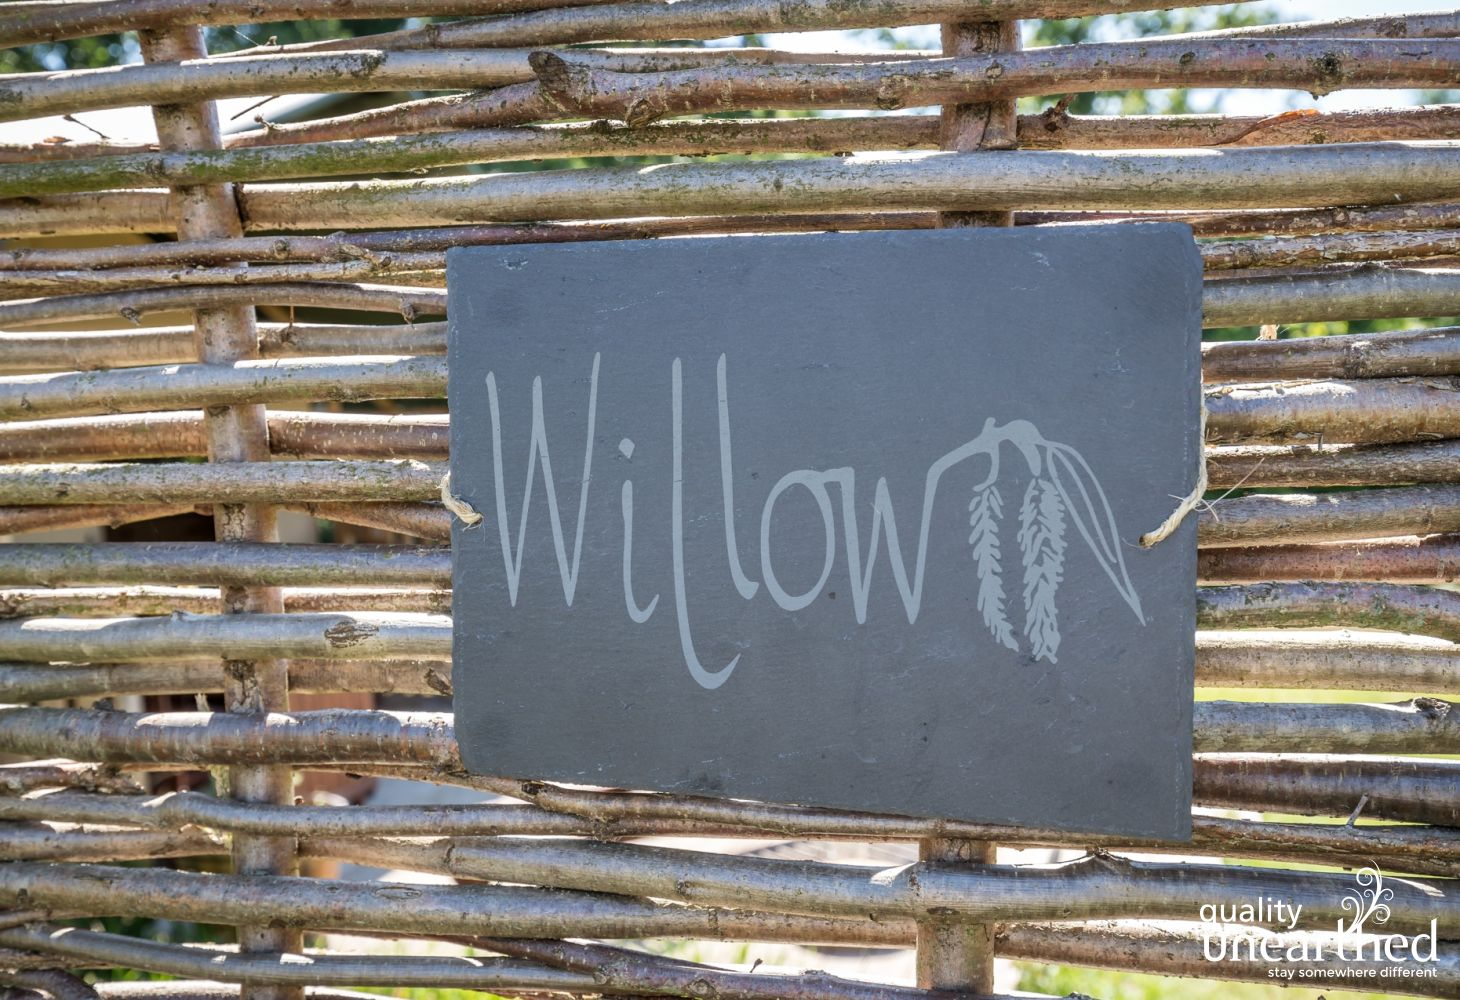 Willow Tree Safari in Monmouthshire